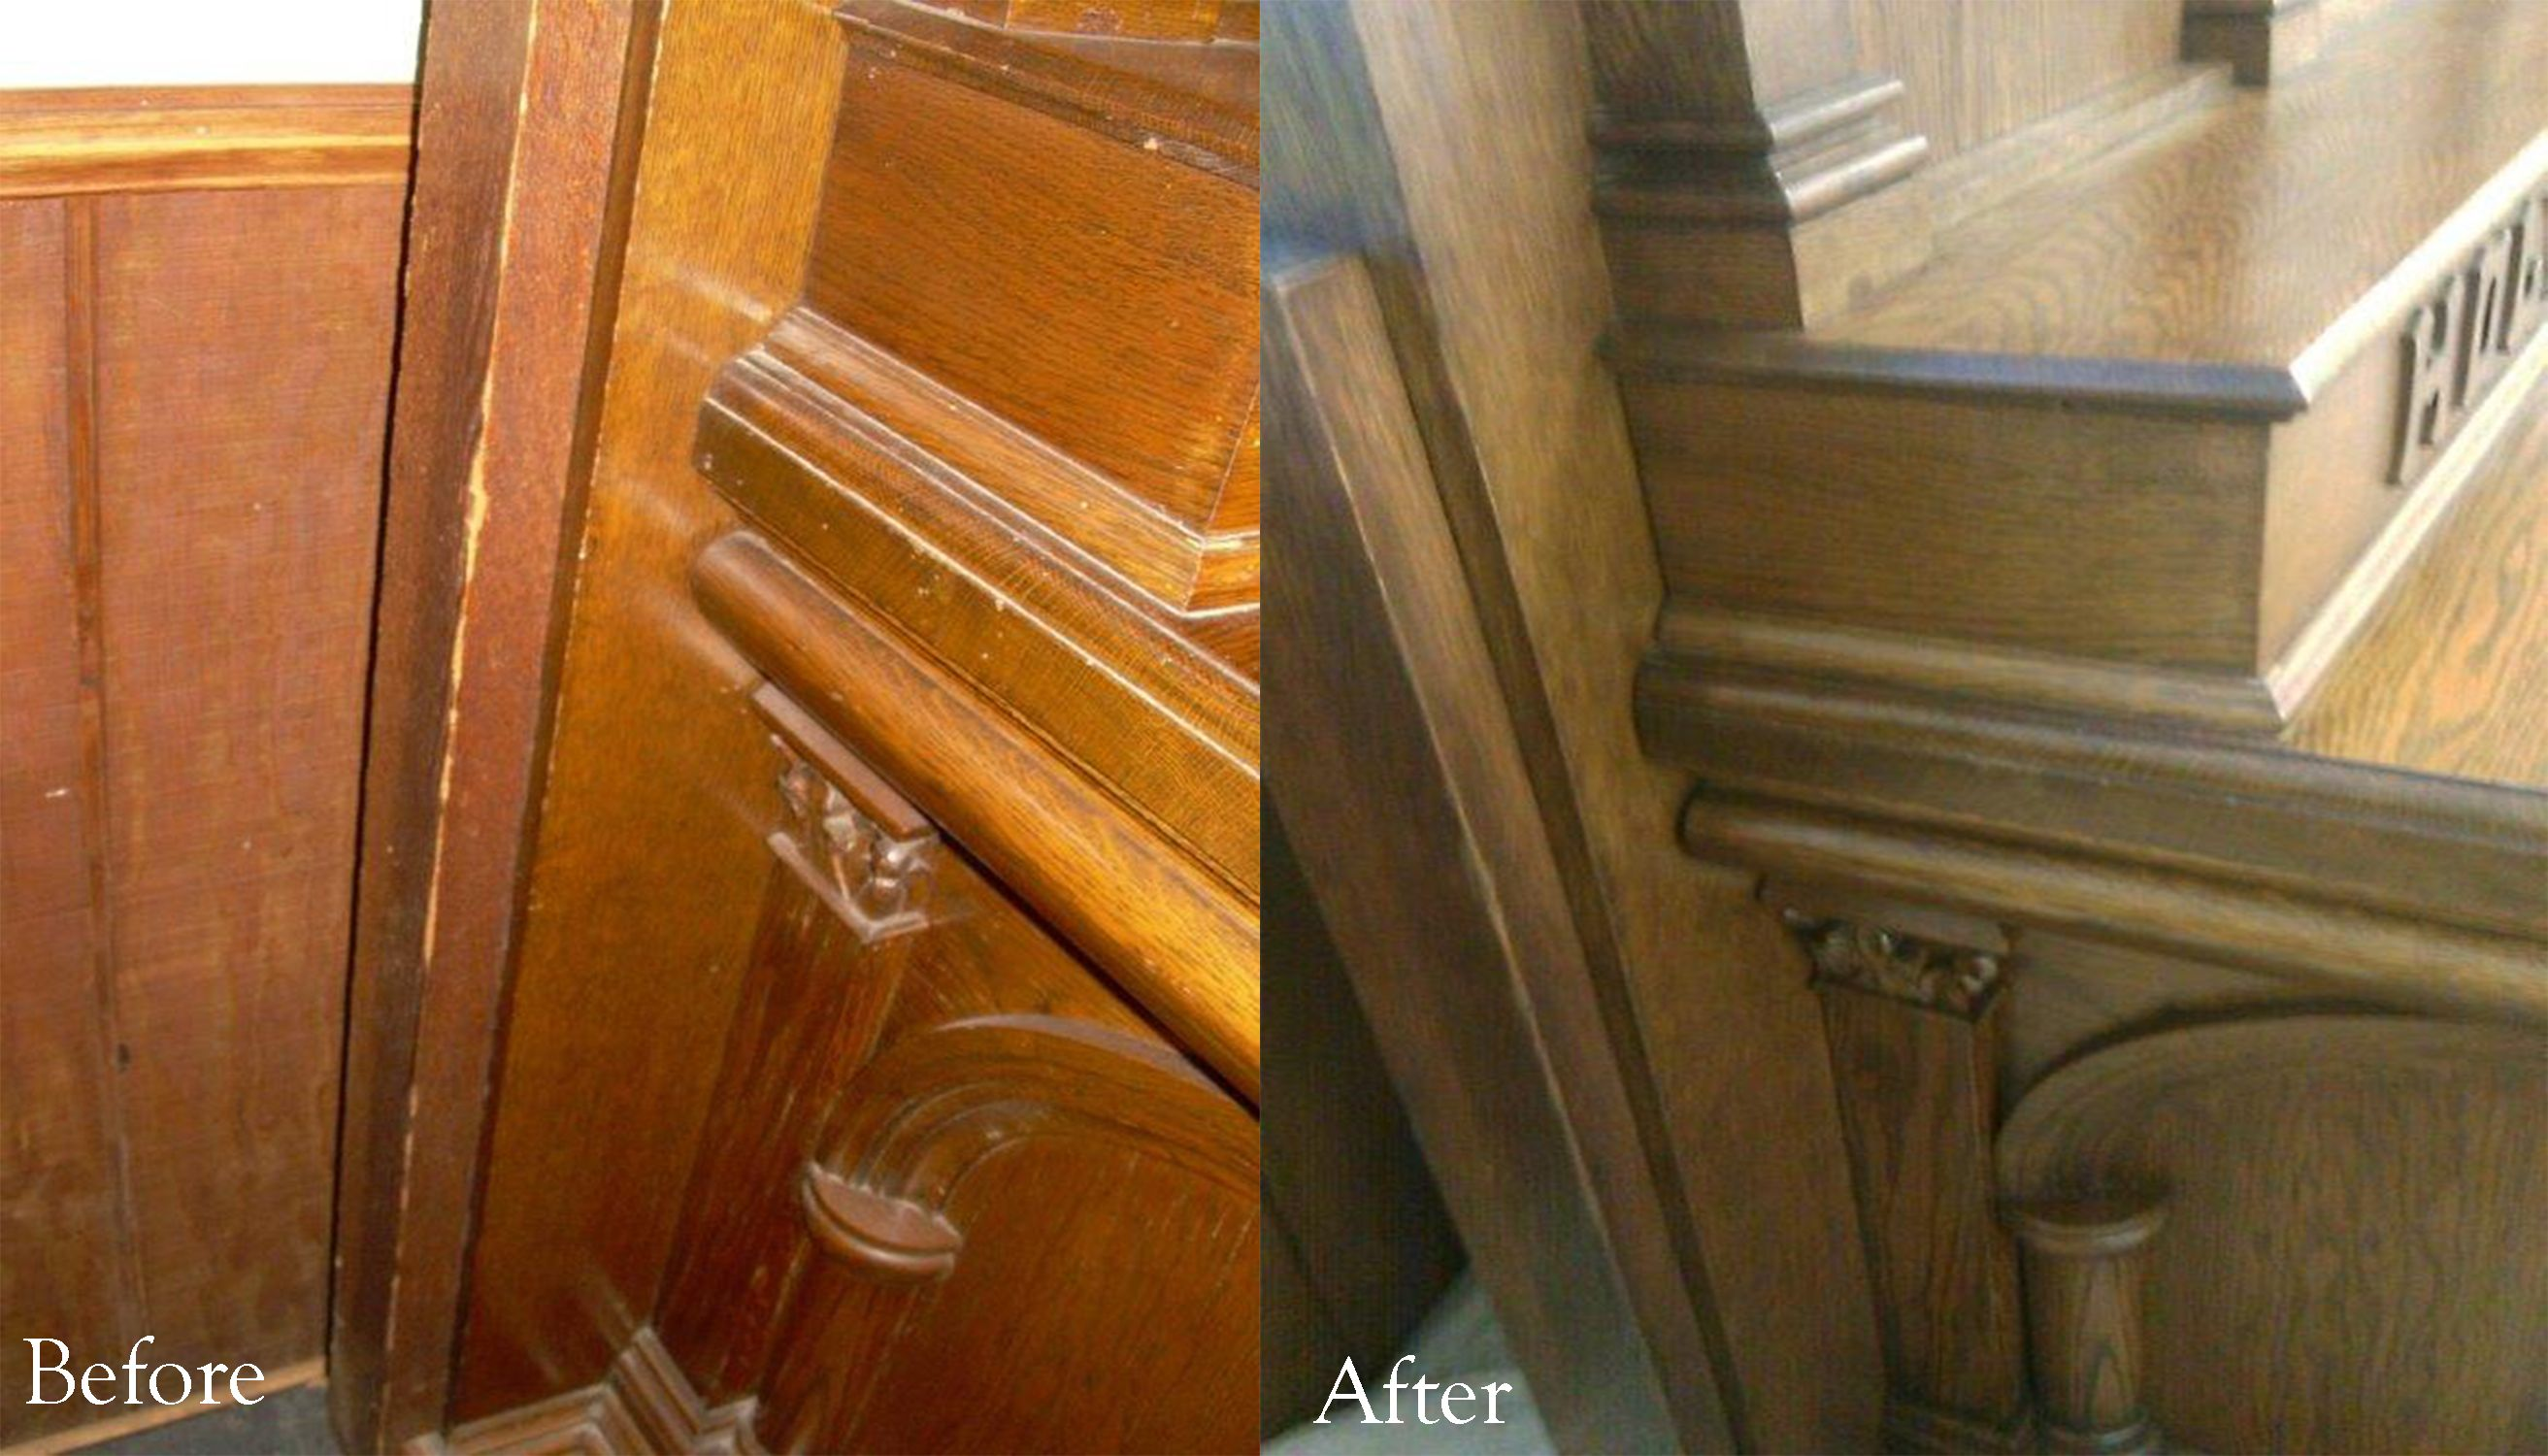 Before And After Photos From The Good Shepherd In Pearl River, NY. Work By